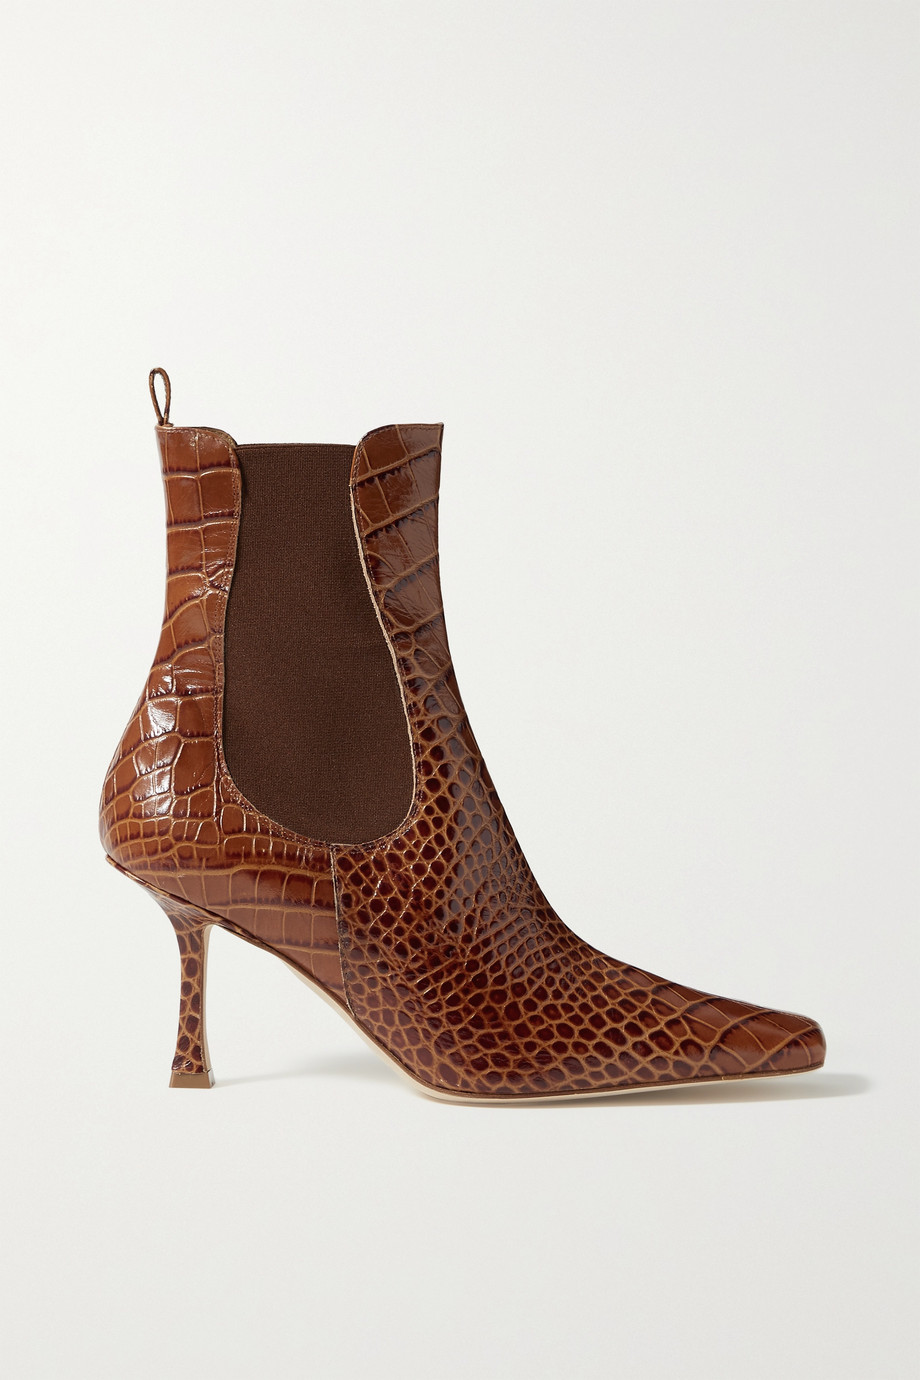 A.W.A.K.E. MODE Chelsea croc-effect leather ankle boots